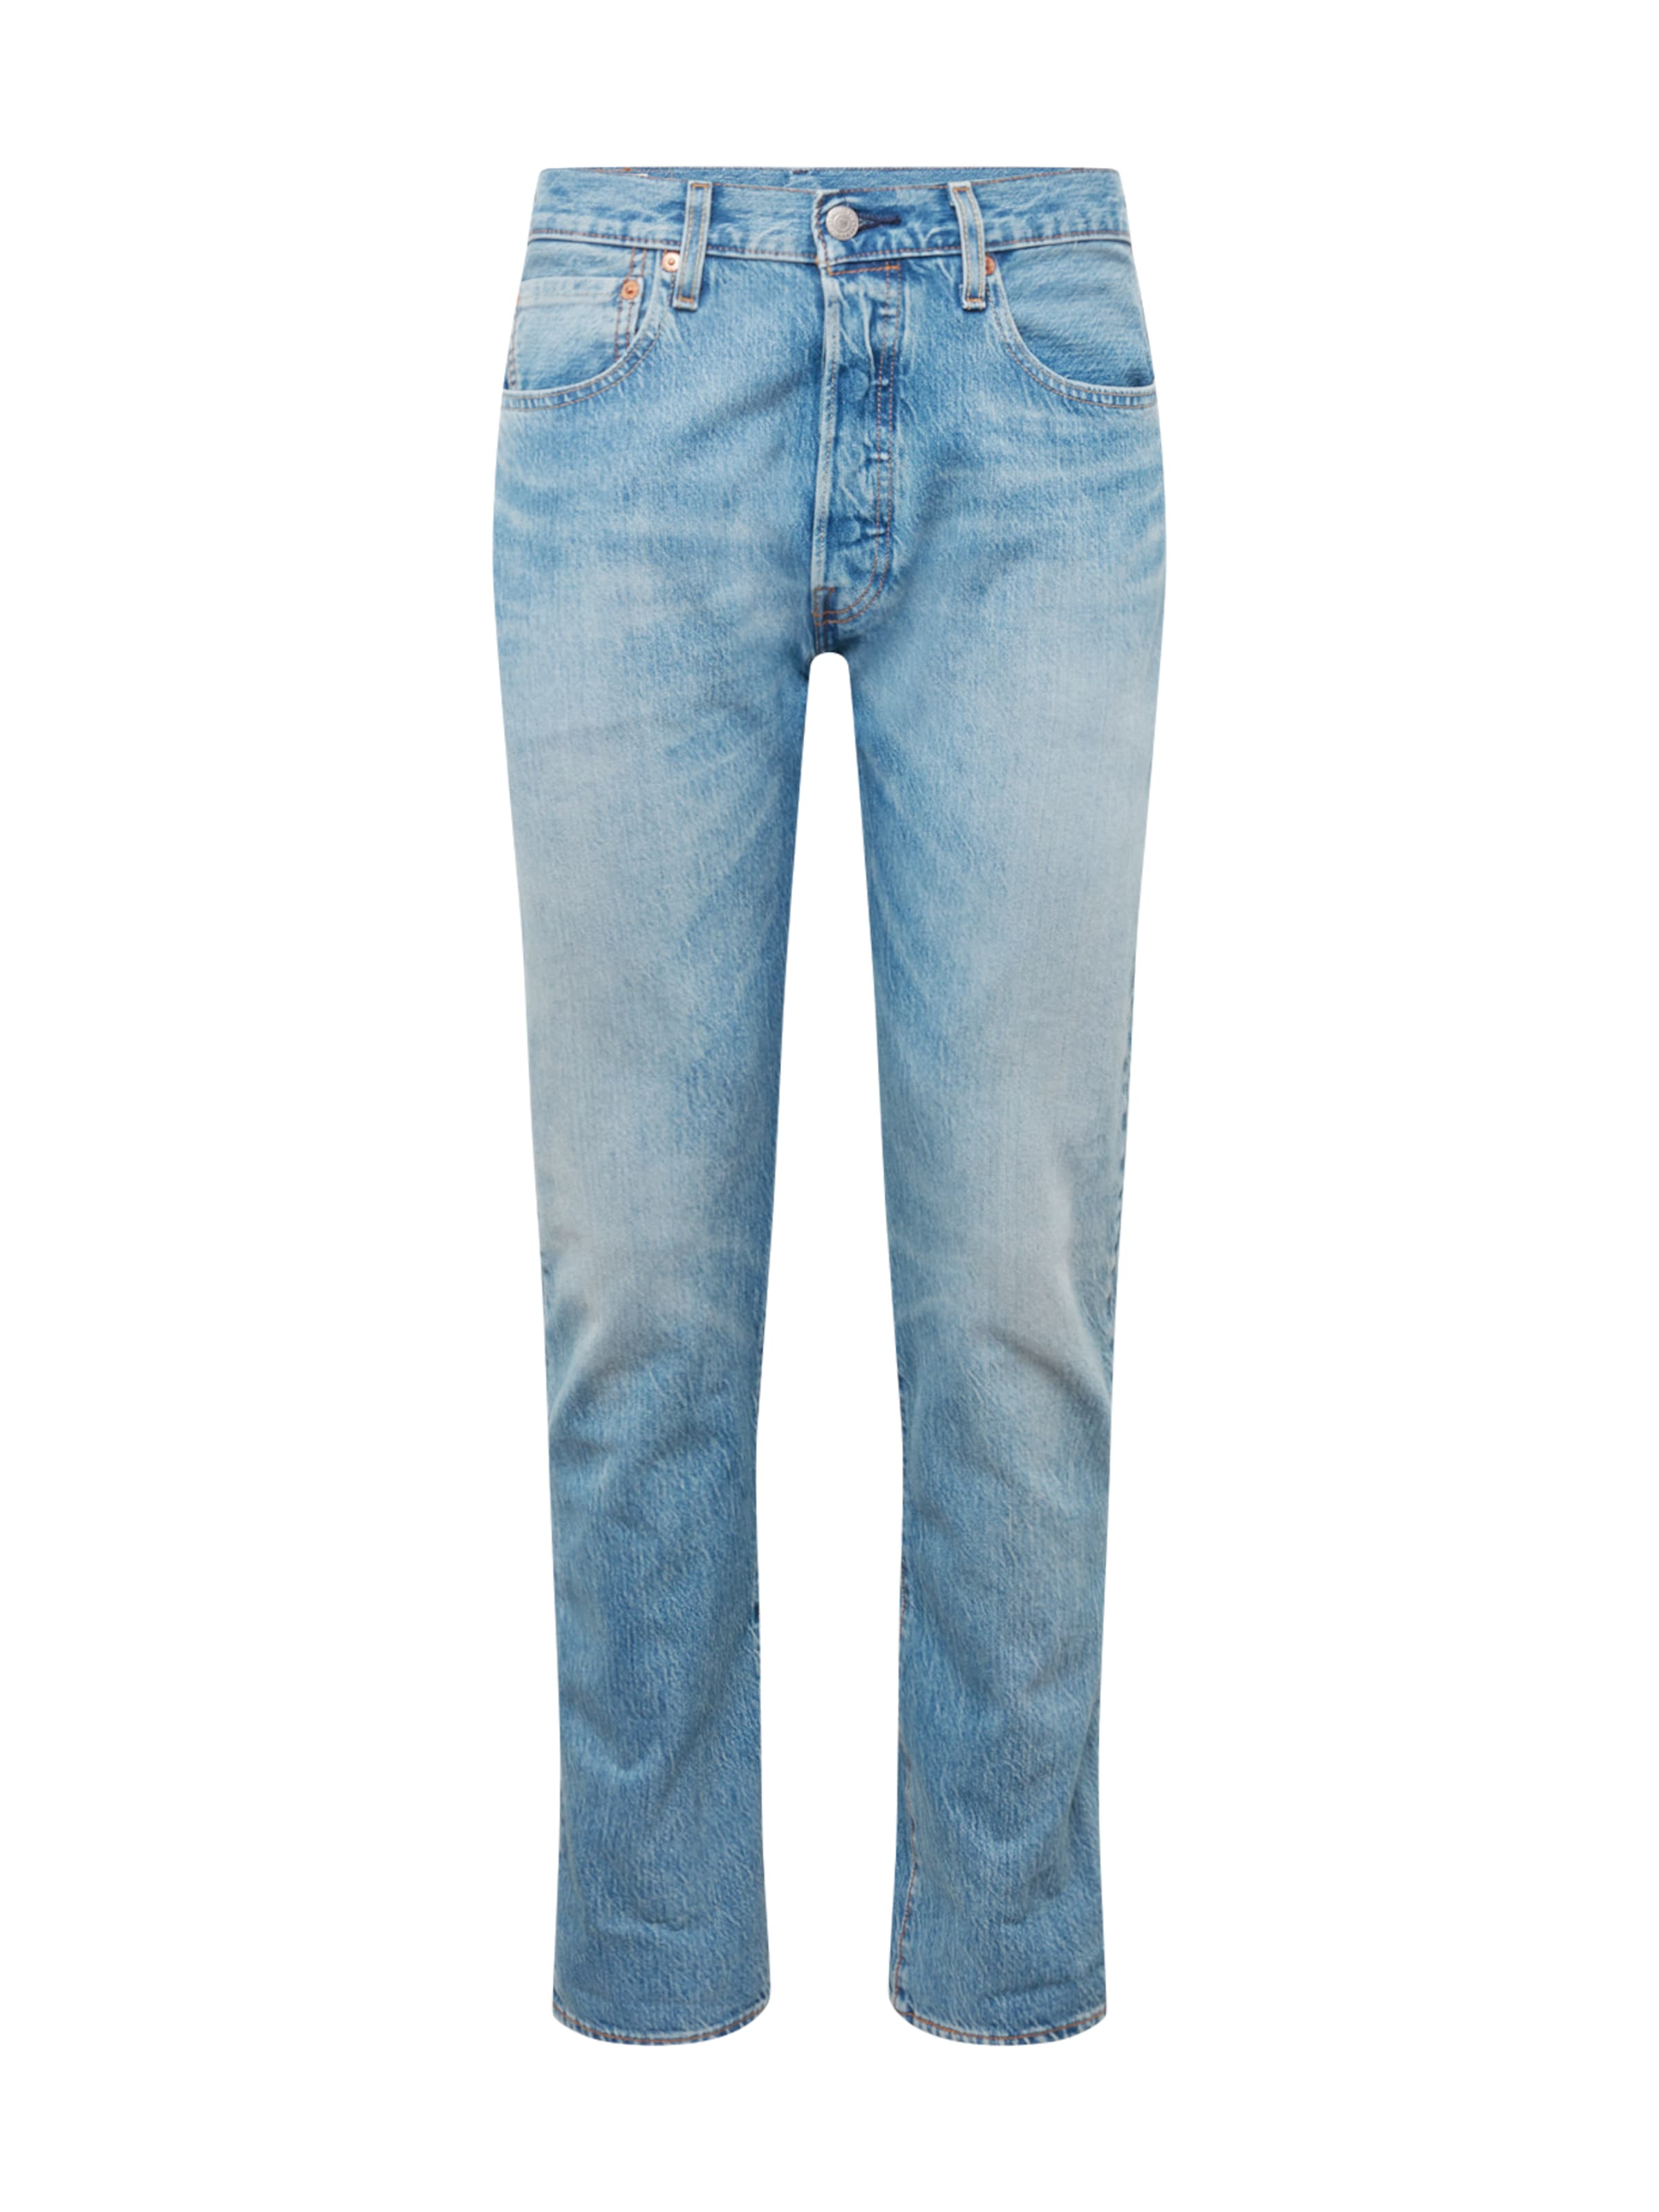 Levi's Jeans '501 In Blue Original Fit' Denim pqSzMUVG